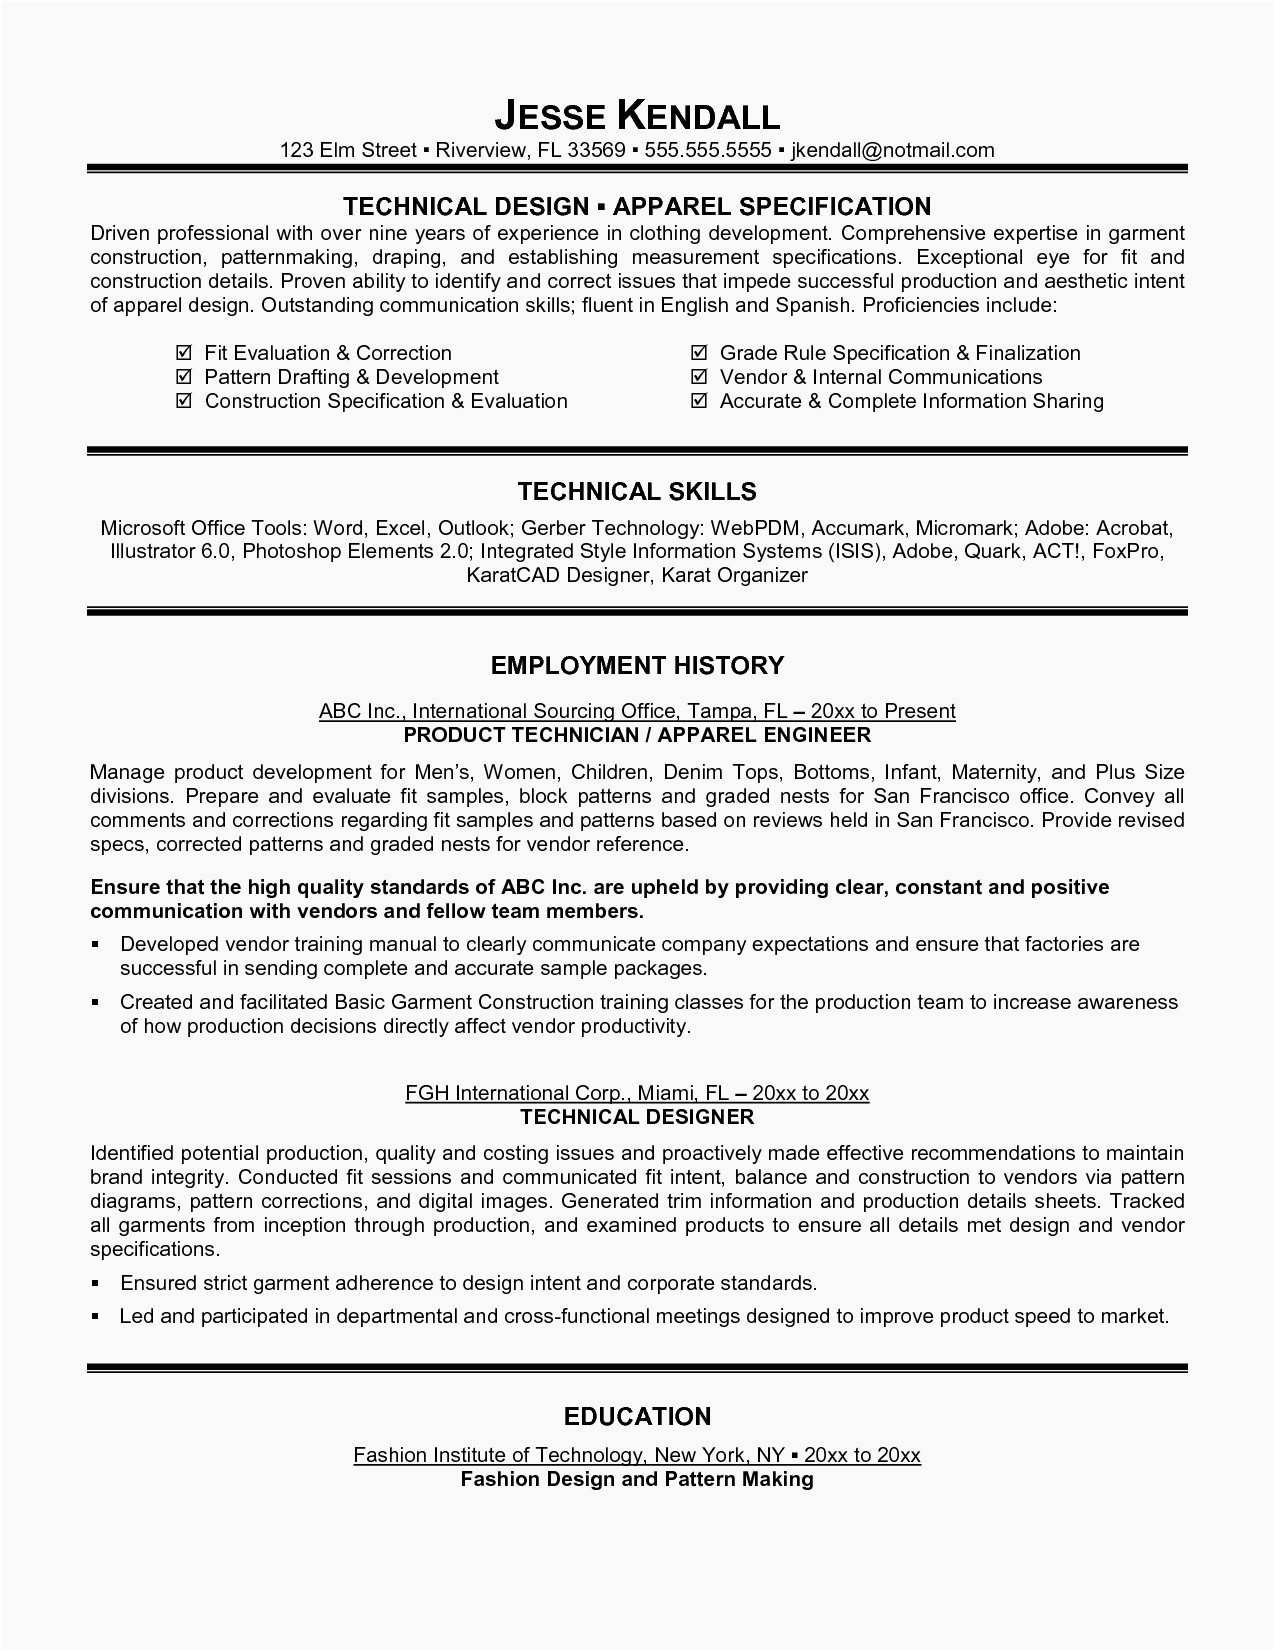 Information Technology Resume Template Word - 30 Resume Template Microsoft Examples